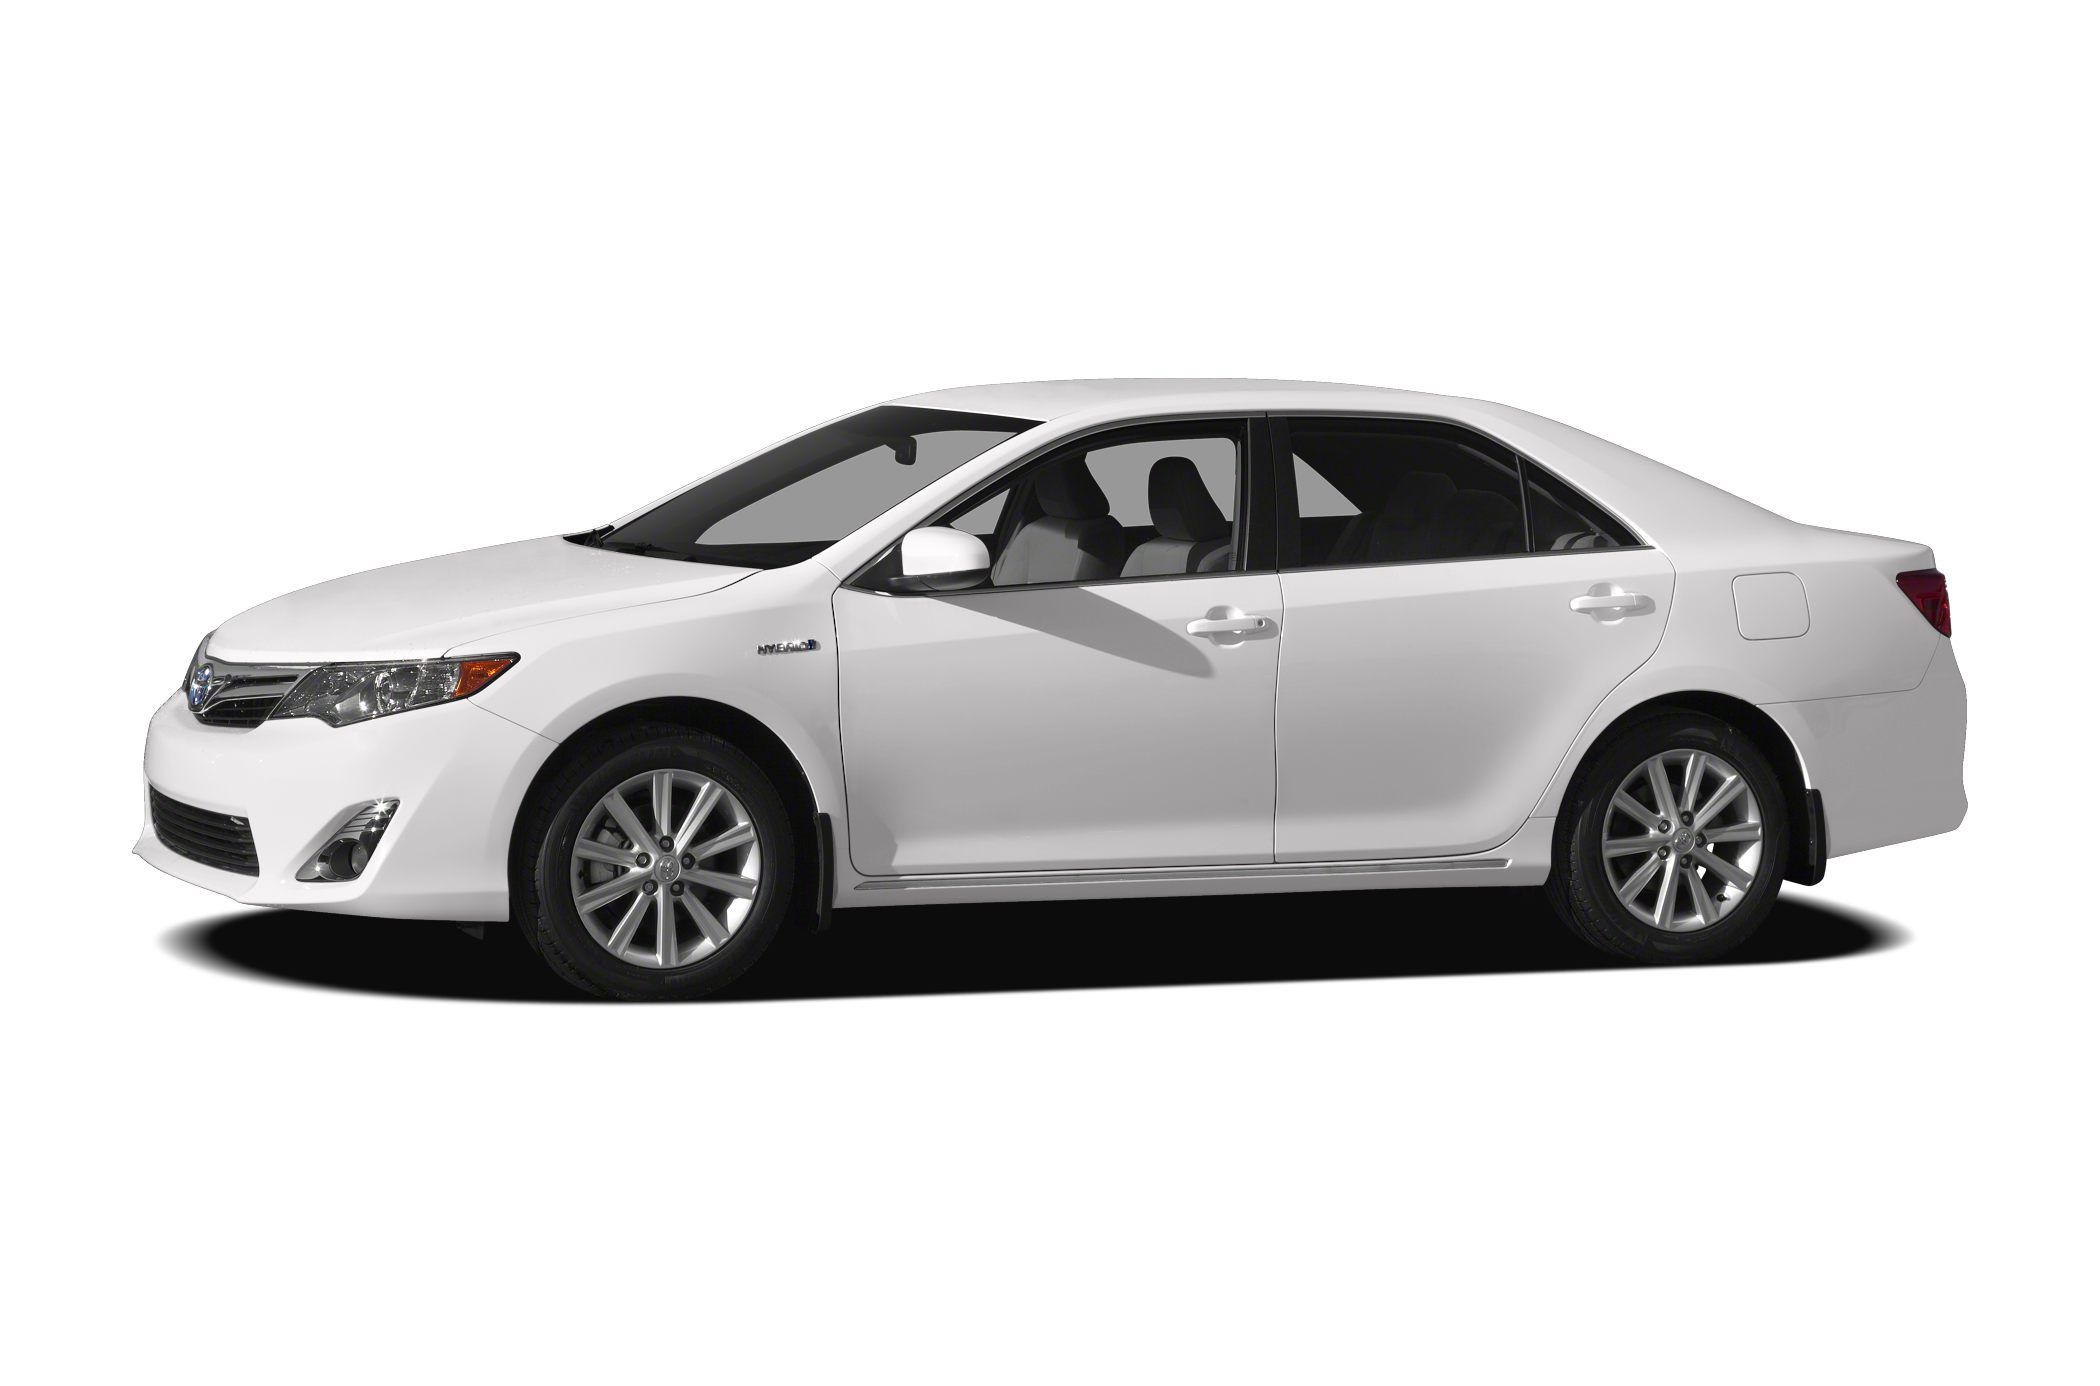 2012 Toyota Camry Hybrid XLE CARFAX 1-Owner 1000 below Kelley Blue Book FUEL EFFICIENT 38 MPG